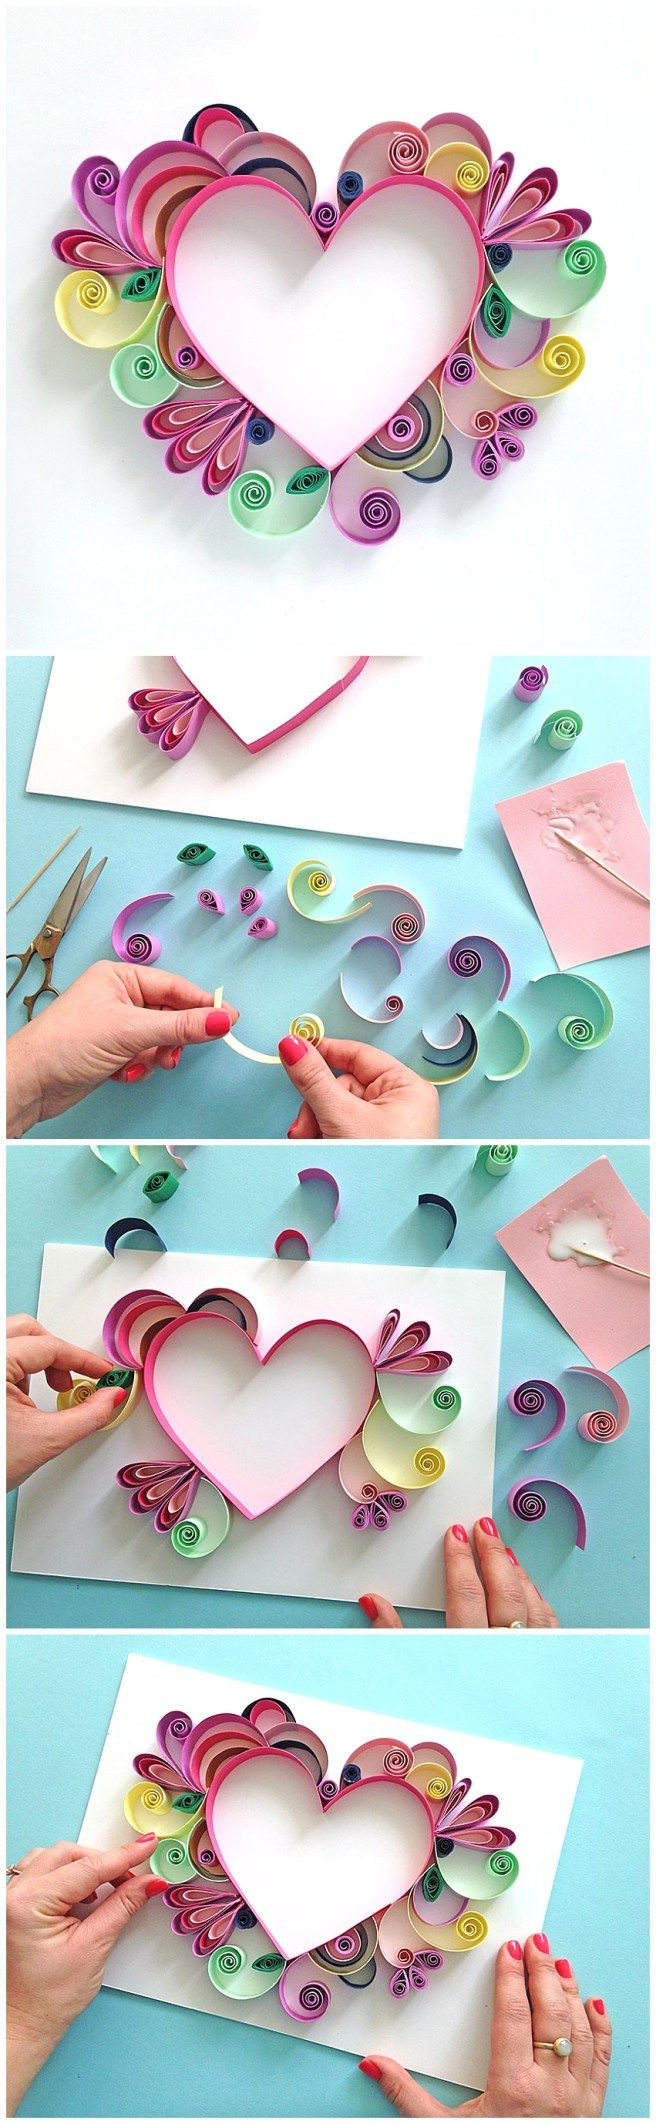 The best do it yourself gifts fun clever and unique diy craft learn how to quill a darling heart shaped mothers day paper craft gift idea via paper diy solutioingenieria Choice Image